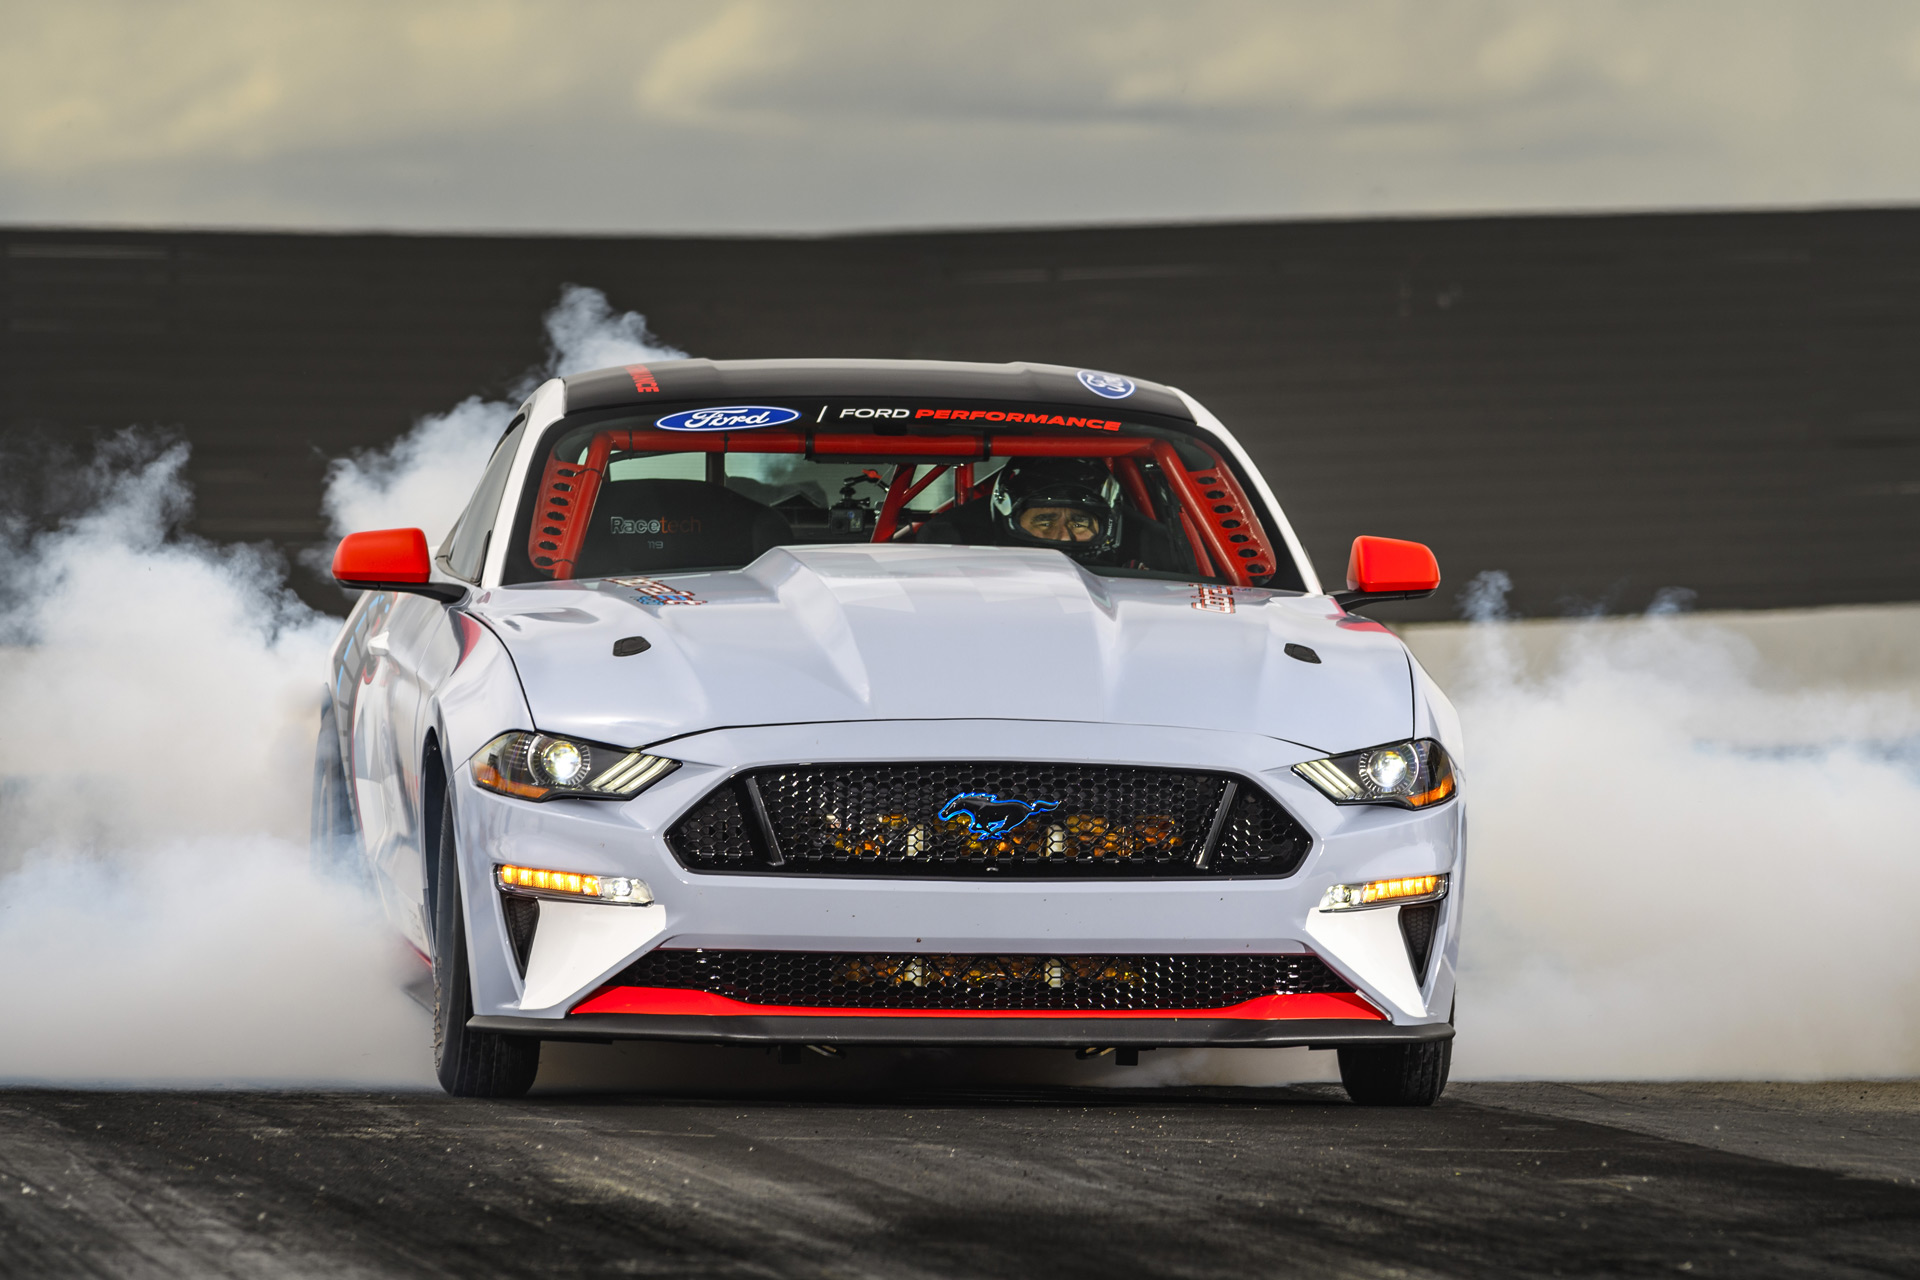 The NHRA is creating an electric car class for drag racing